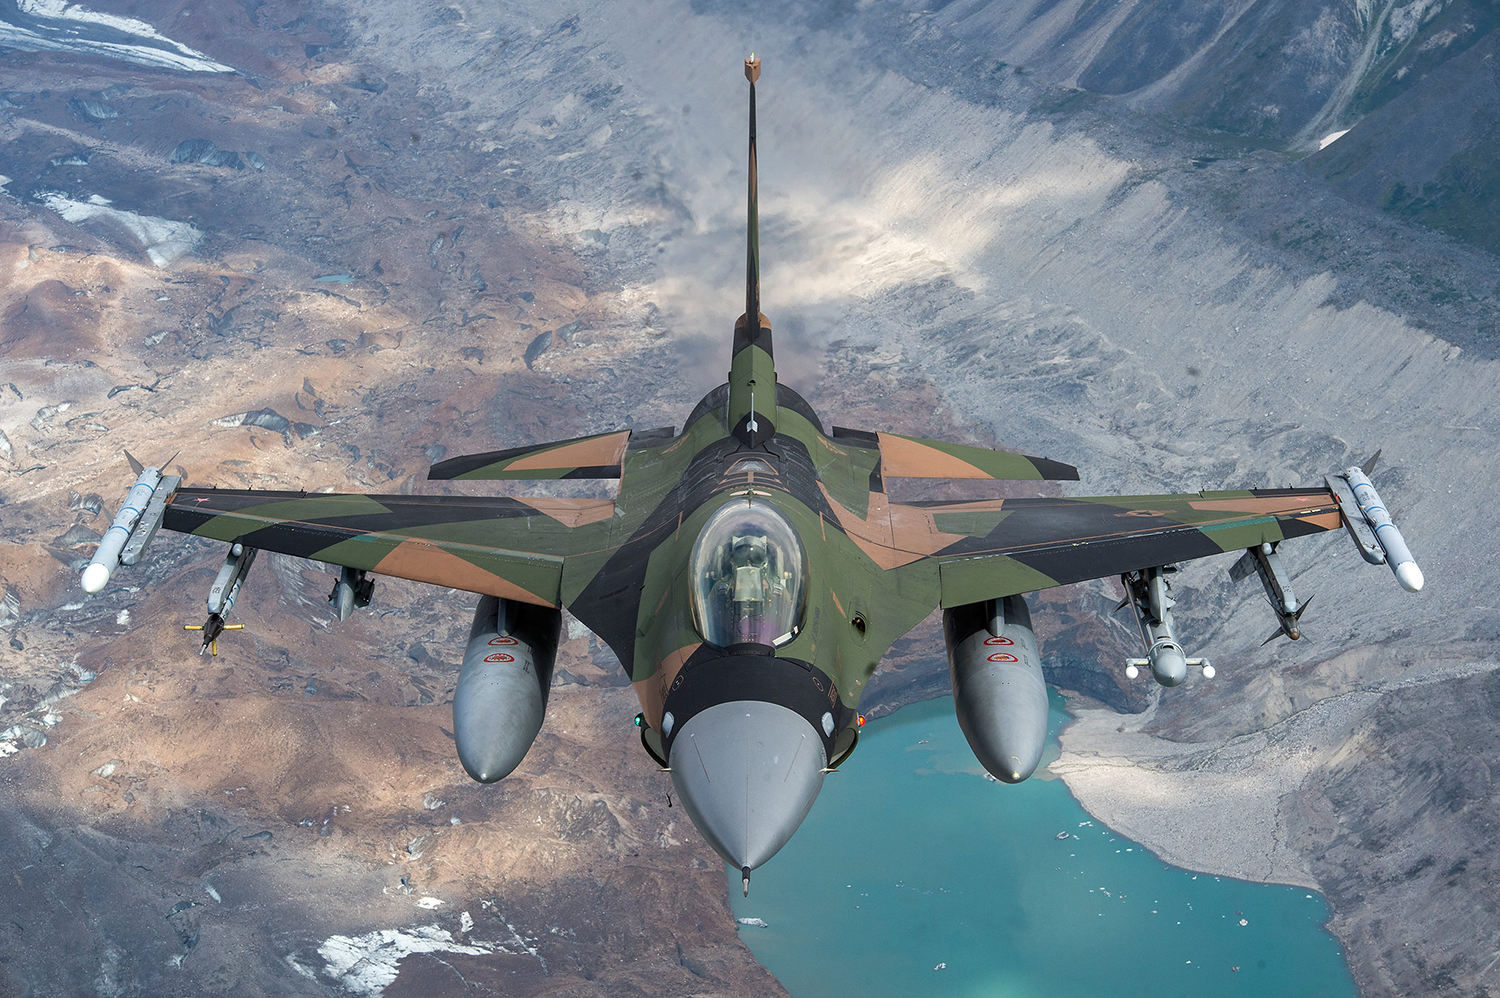 An Air Force F-16 Fighting Falcon from Eielson Air Force Base flies in formation over the Joint Pacific Alaska Range Complex, July 18, 2019. (Staff Sgt. James Richardson/Air Force)